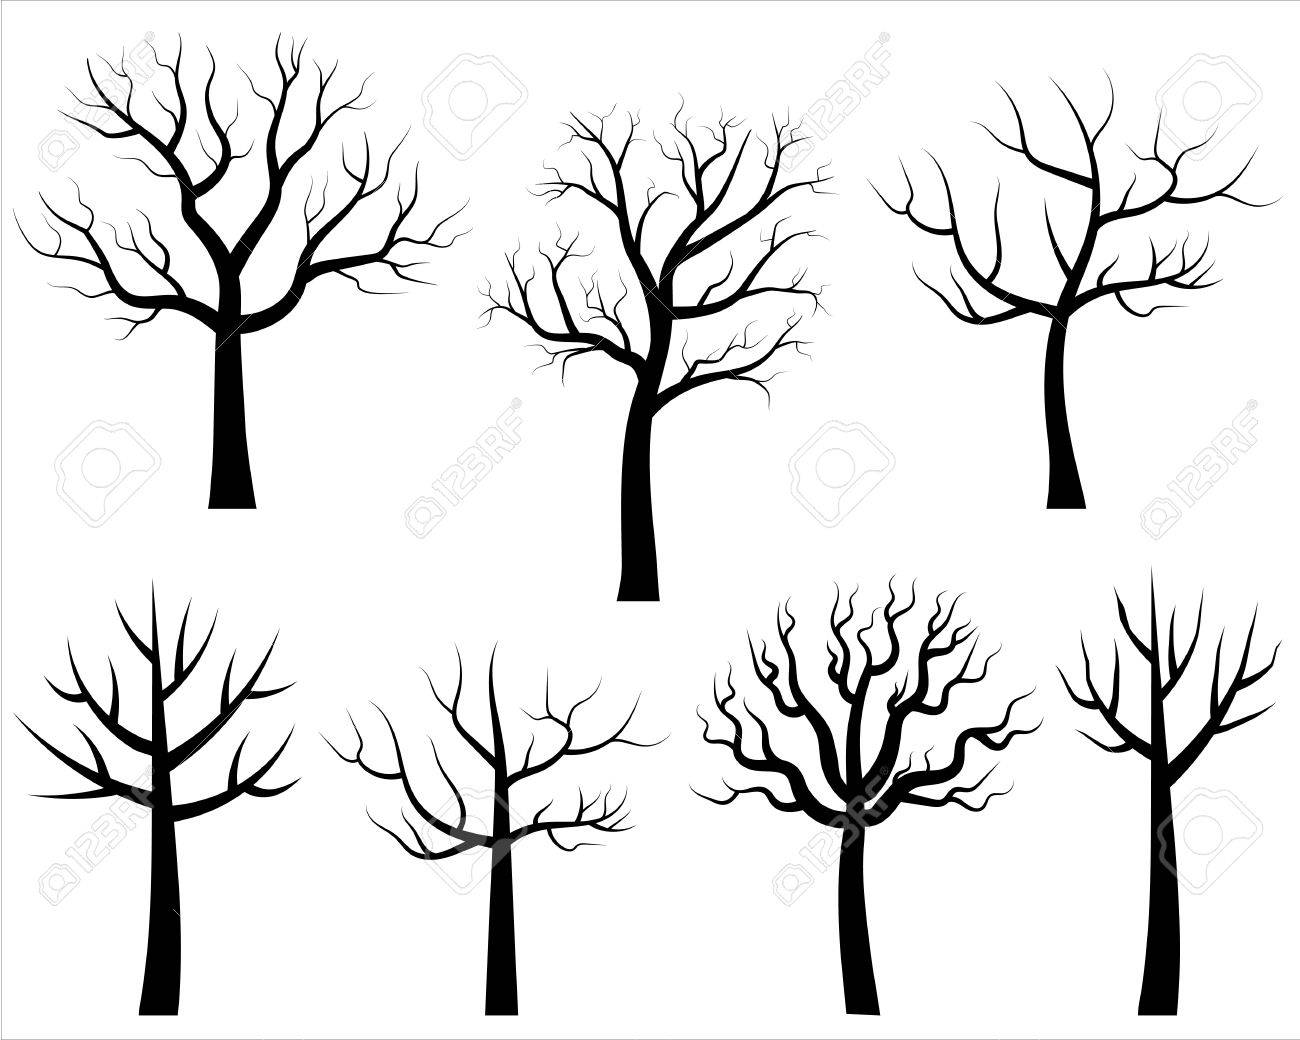 Cartoon Bare Trees In Black Vector Trees Without Leaves Royalty